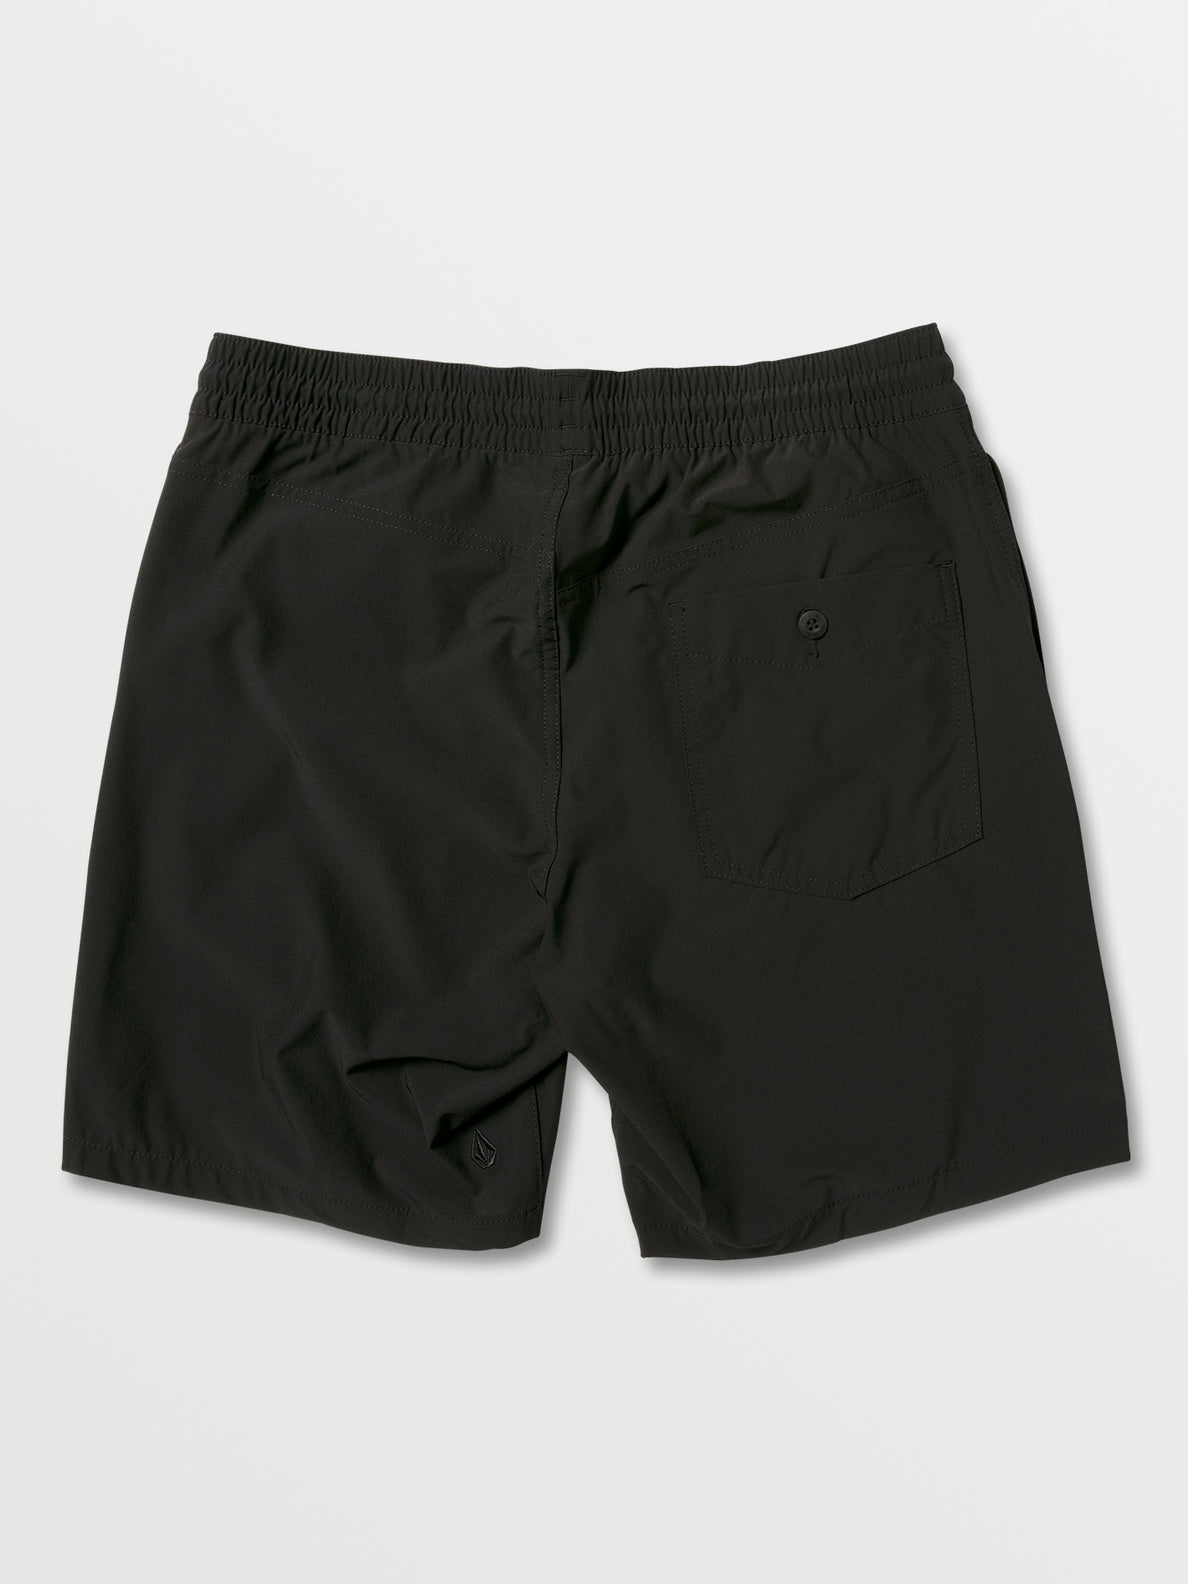 Sickly Surf N' Turf Shorts - Black